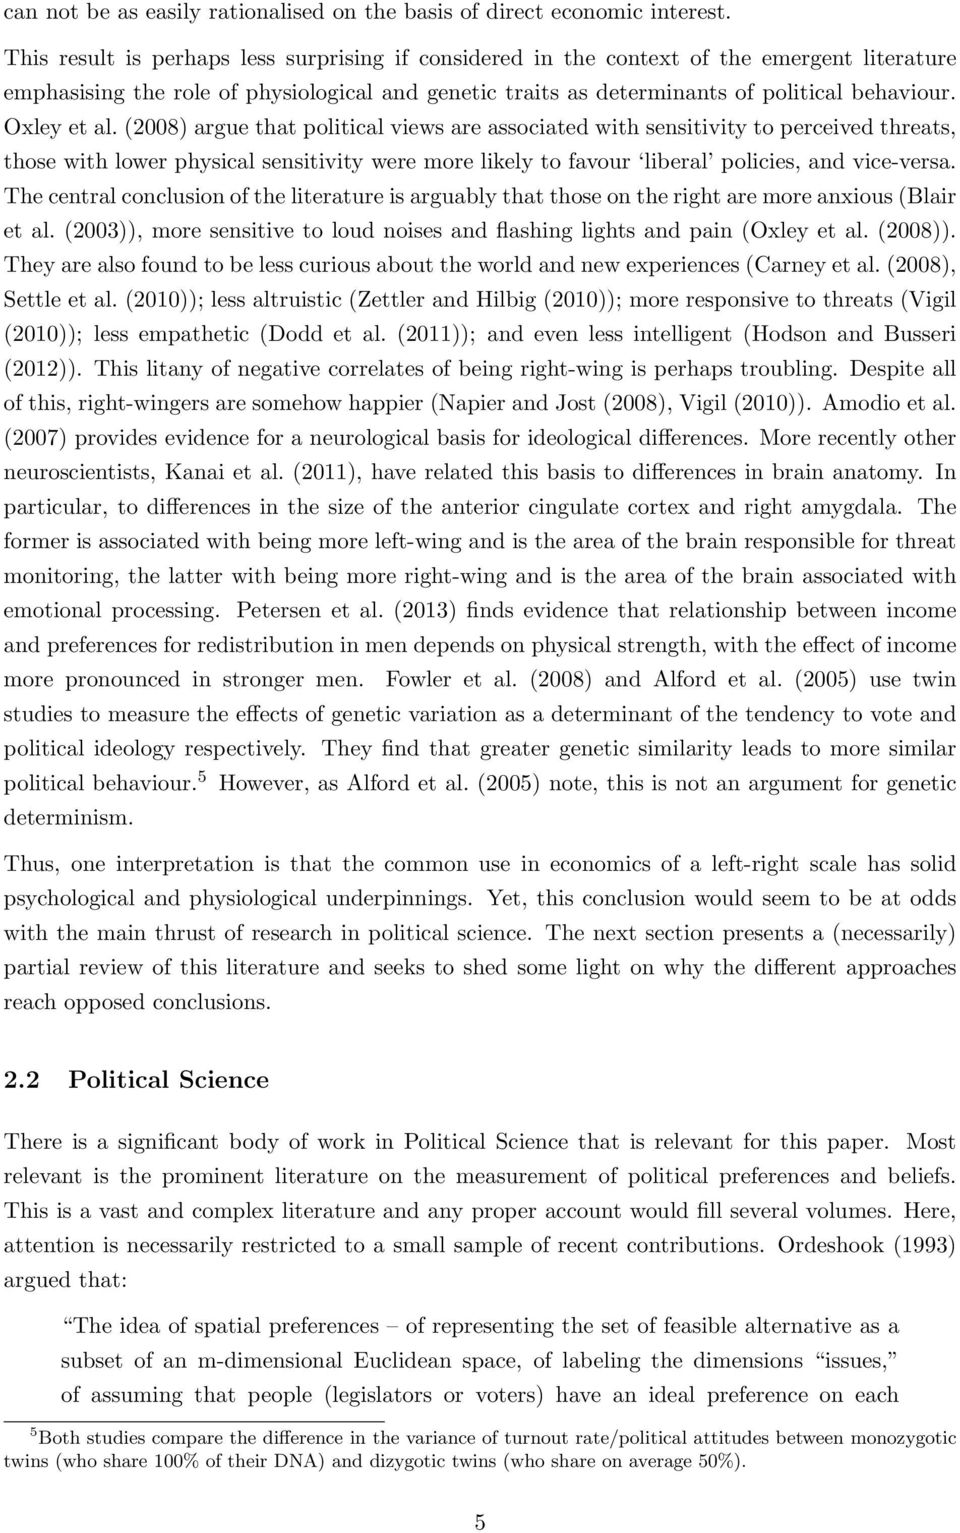 Oxley et al. (2008) argue that political views are associated with sensitivity to perceived threats, those with lower physical sensitivity were more likely to favour liberal policies, and vice-versa.